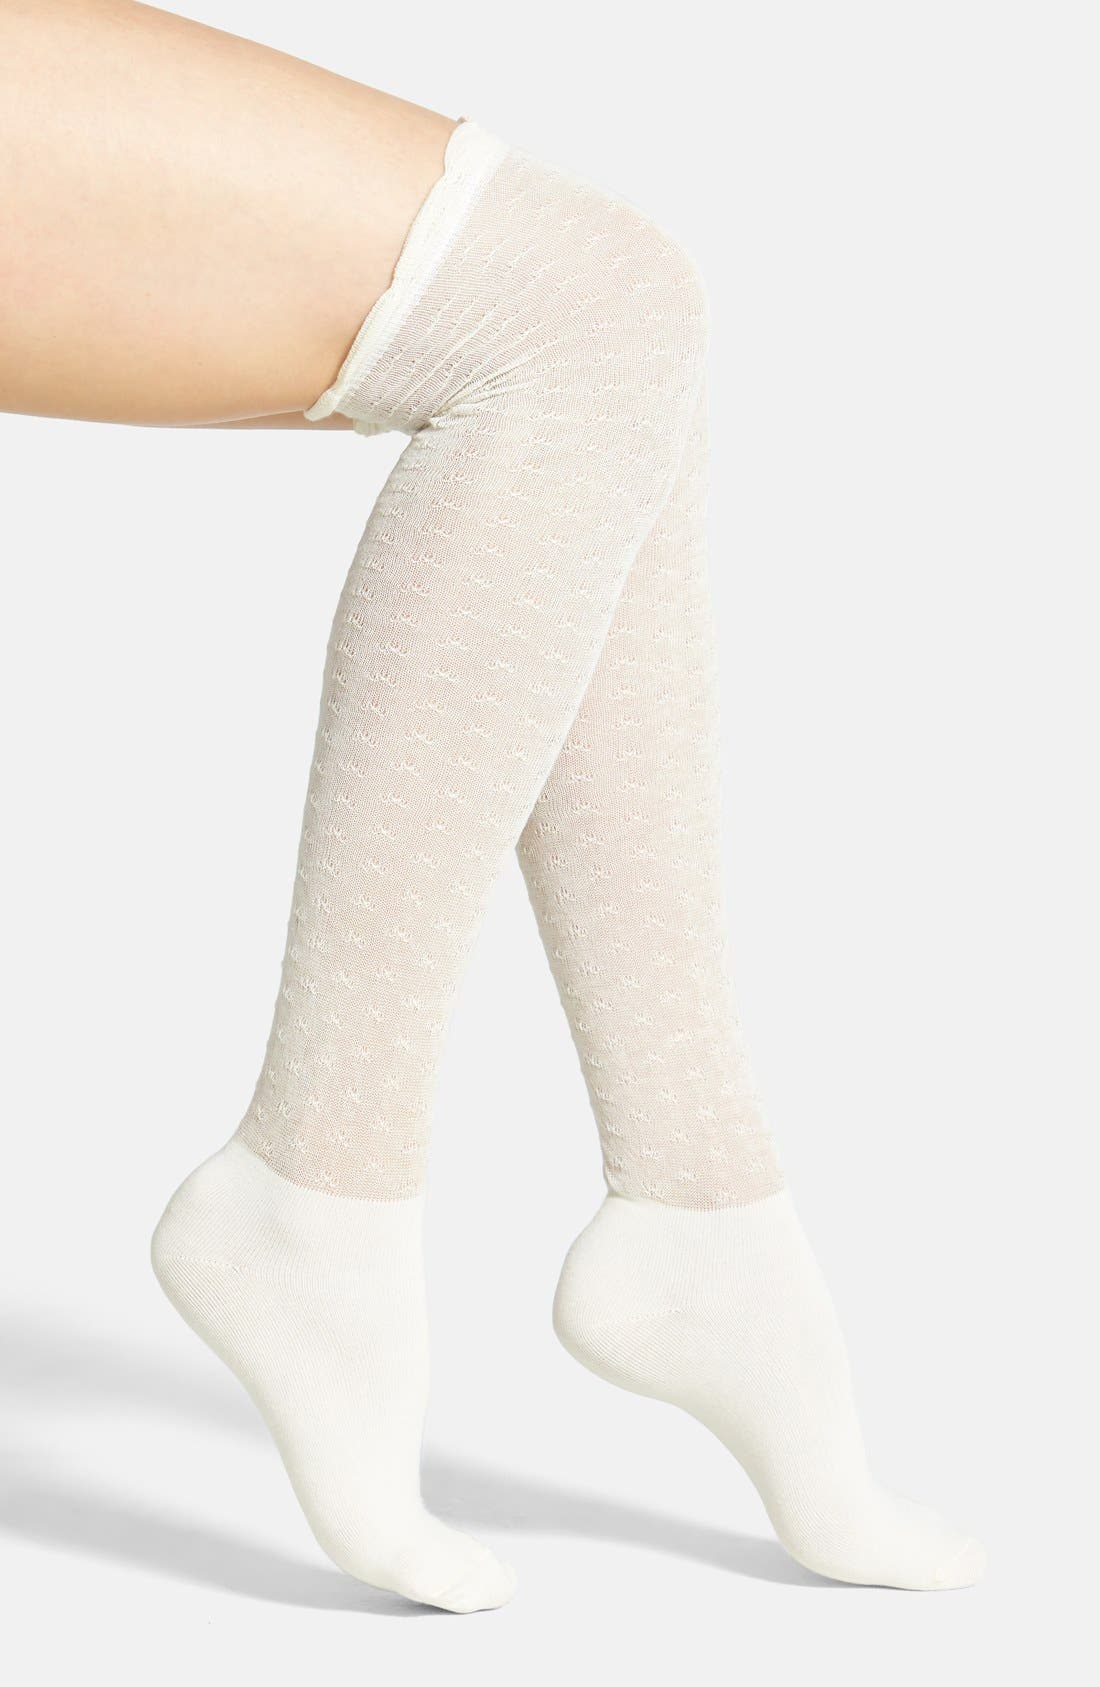 Alternate Image 1 Selected - PACT Slouchy Organic Cotton Over the Knee Socks